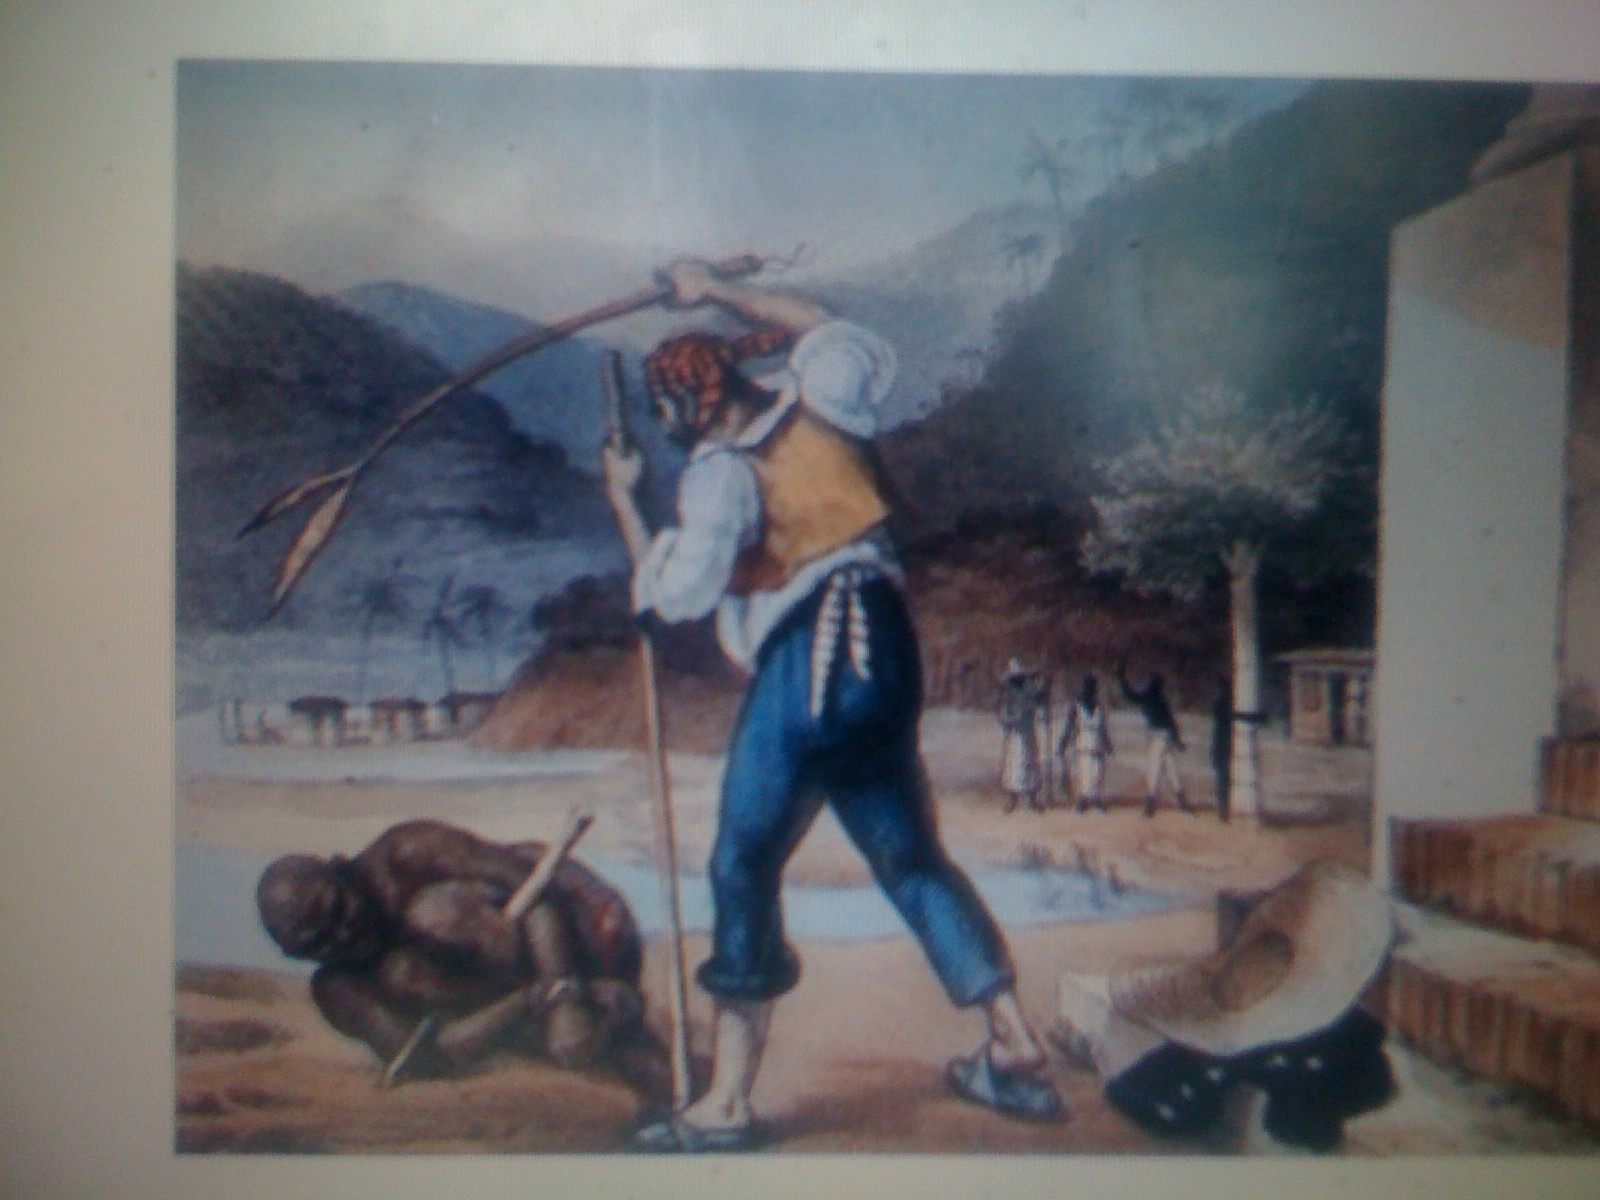 an introduction to the history and the issue of slavery in todays society In what way does slavery still affect society in the plantations needed the system of slavery just as todays farmer is a story from the history of slavery.